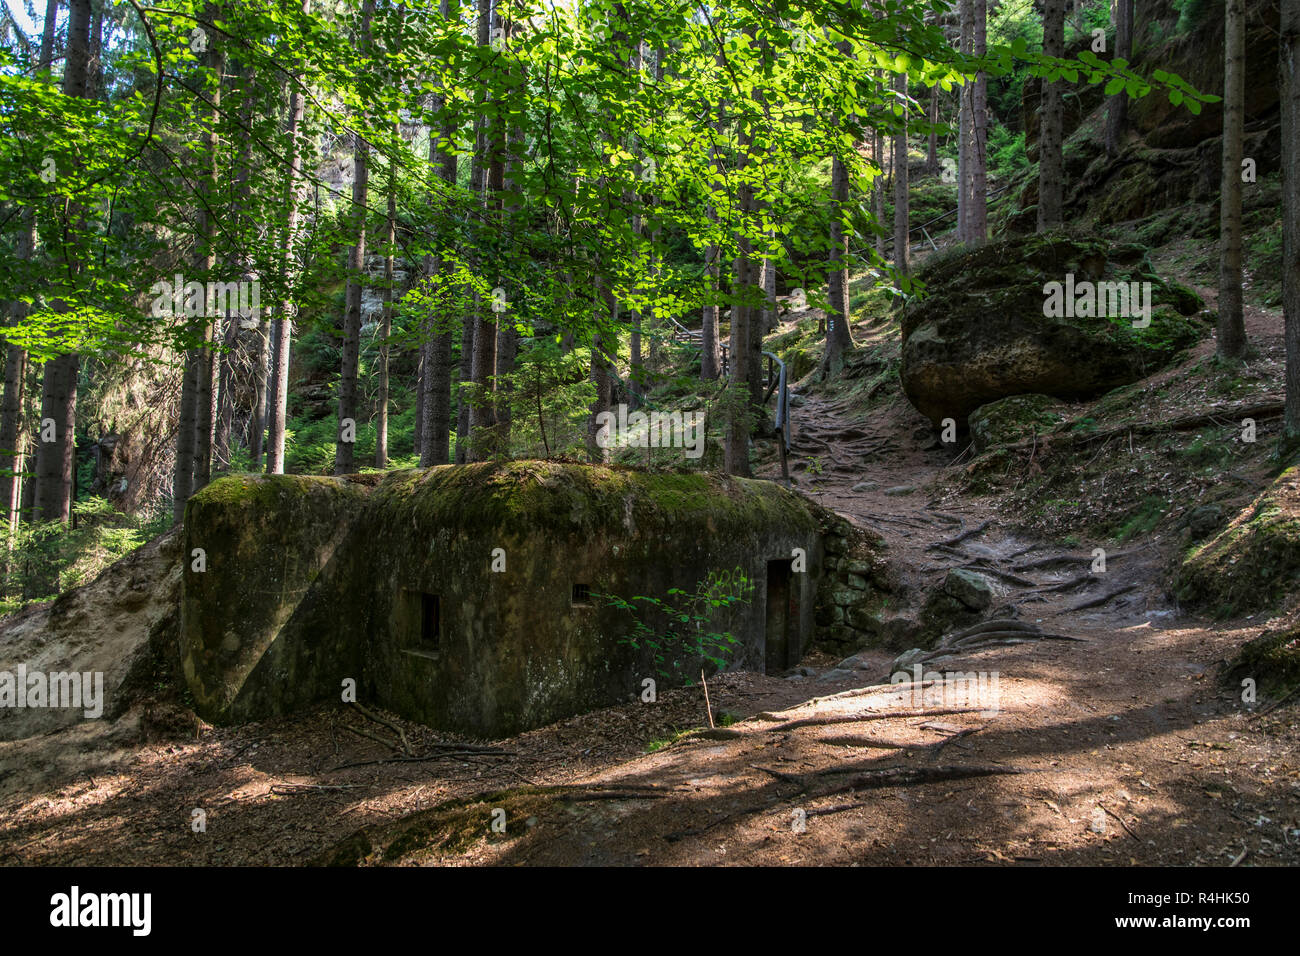 Böhmische Schweiz, Bunker of the Schöberlinie in the gorge of the Kamenice , Bunker der Schöberlinie in der Klamm der Kamenice - Stock Image